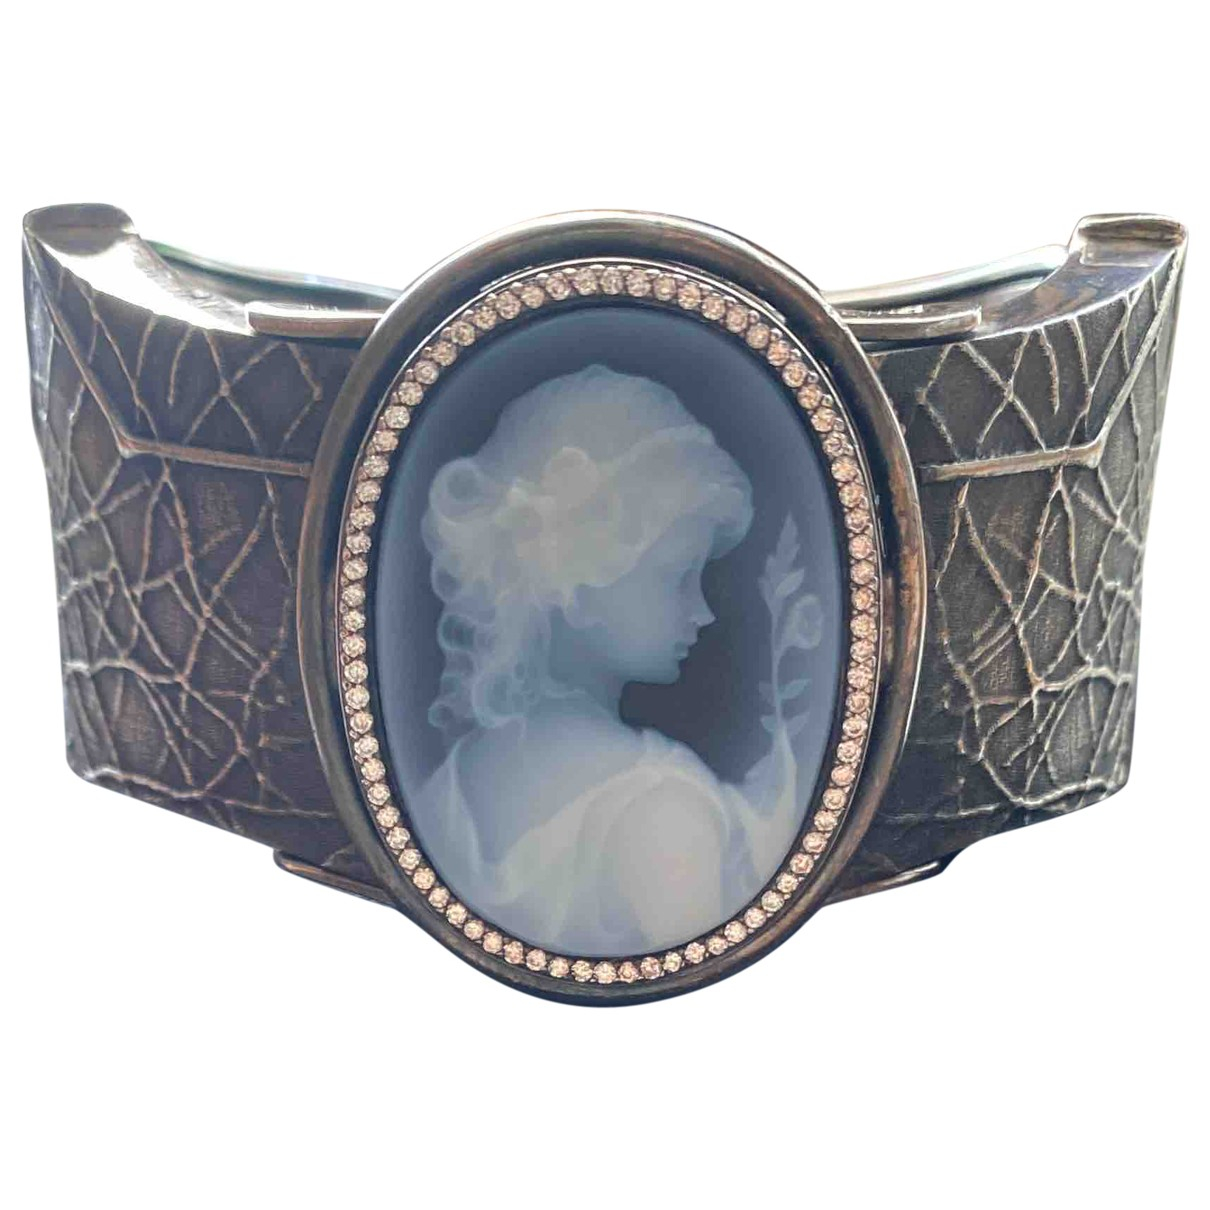 Non Signe / Unsigned Camee Armband in  Blau Silber